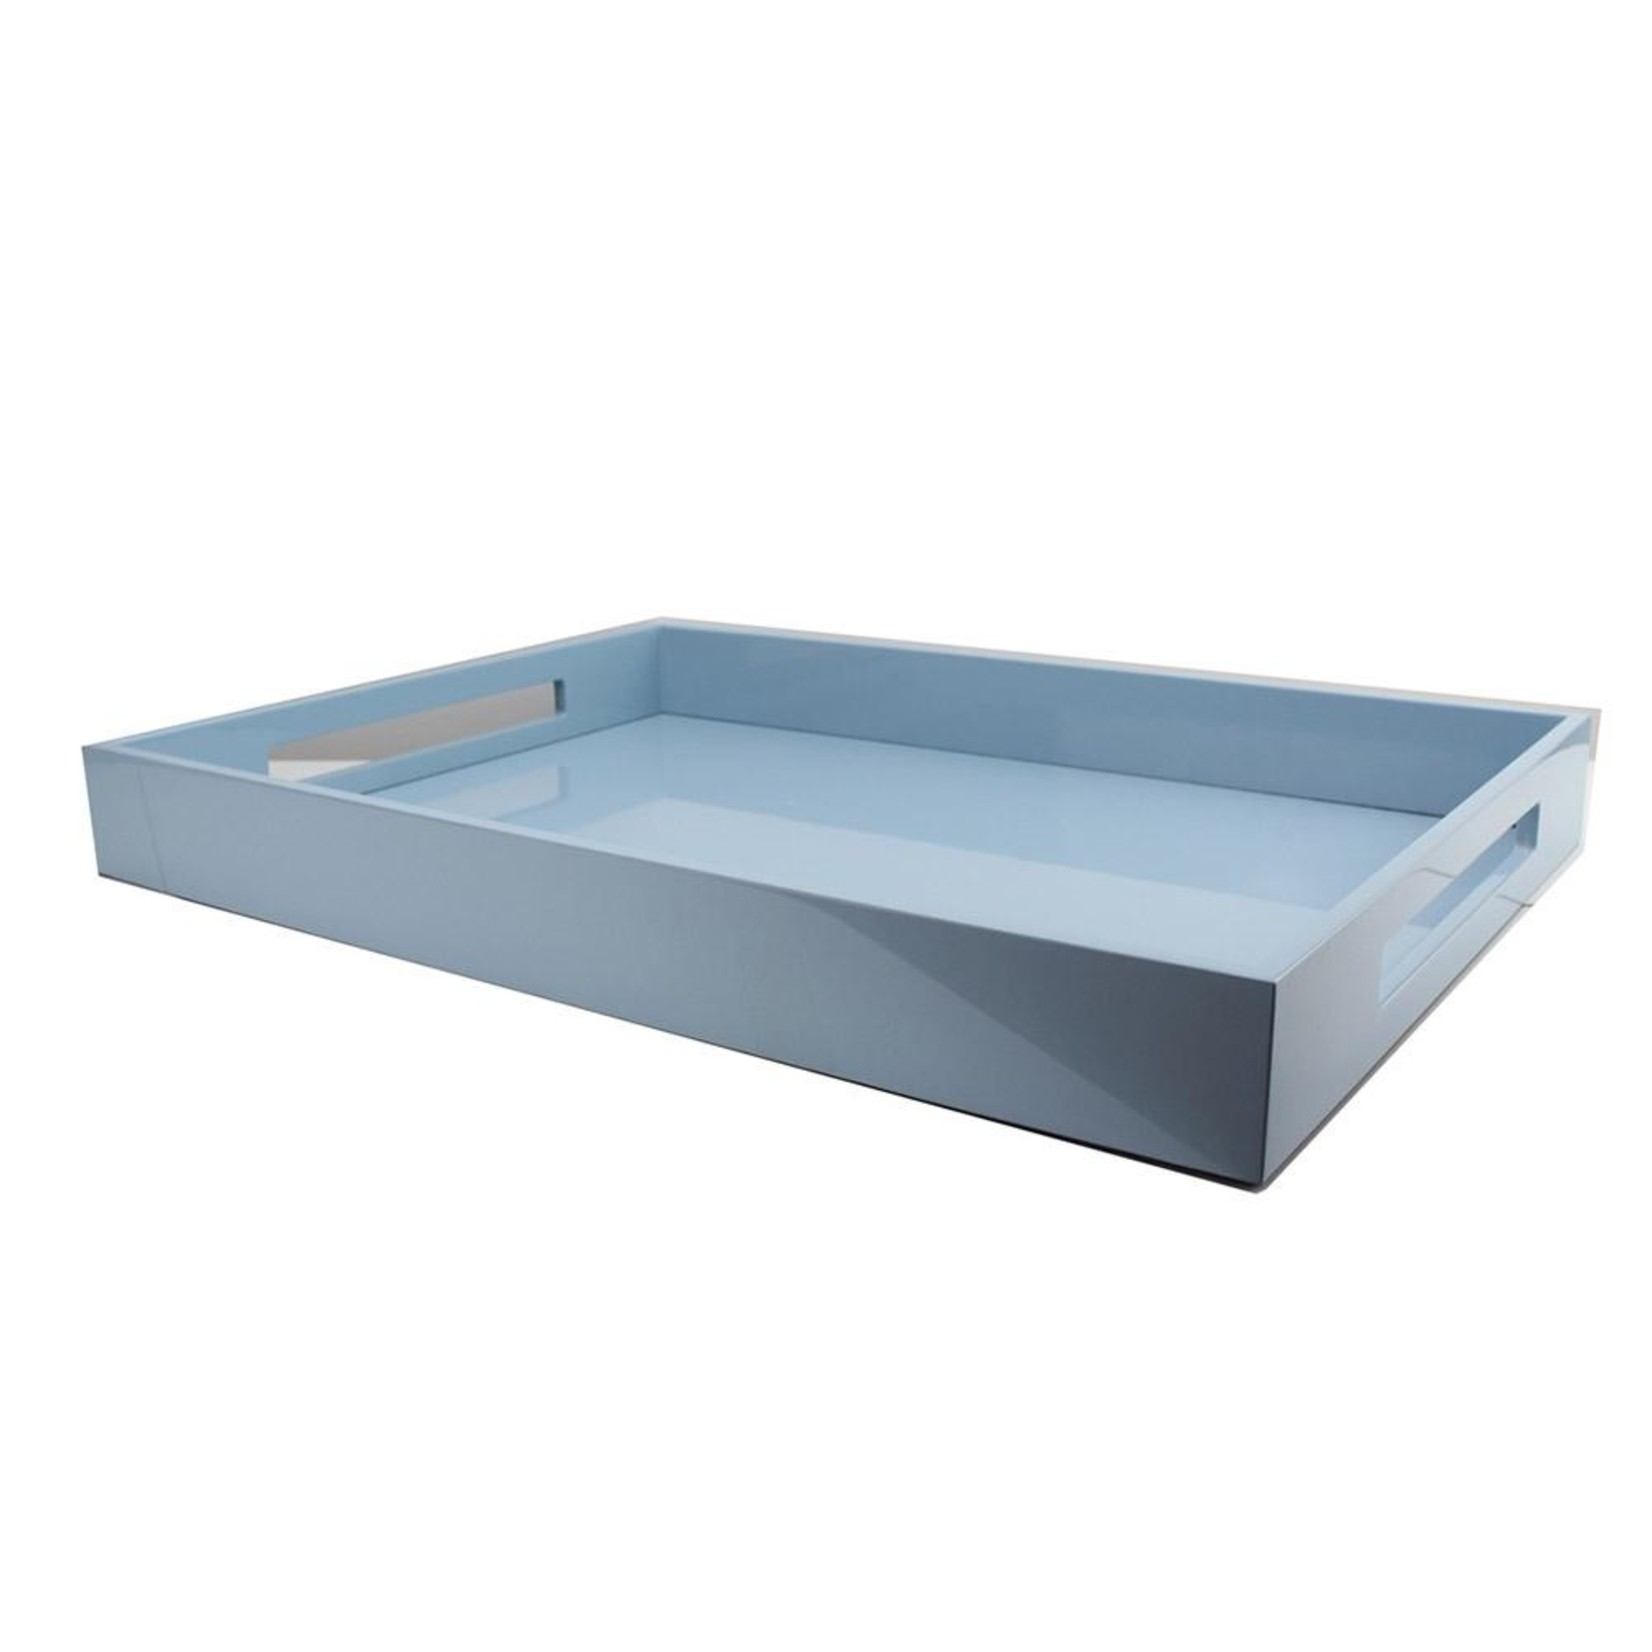 Addison Ross Lacquered Ottoman Tray - Pale Blue